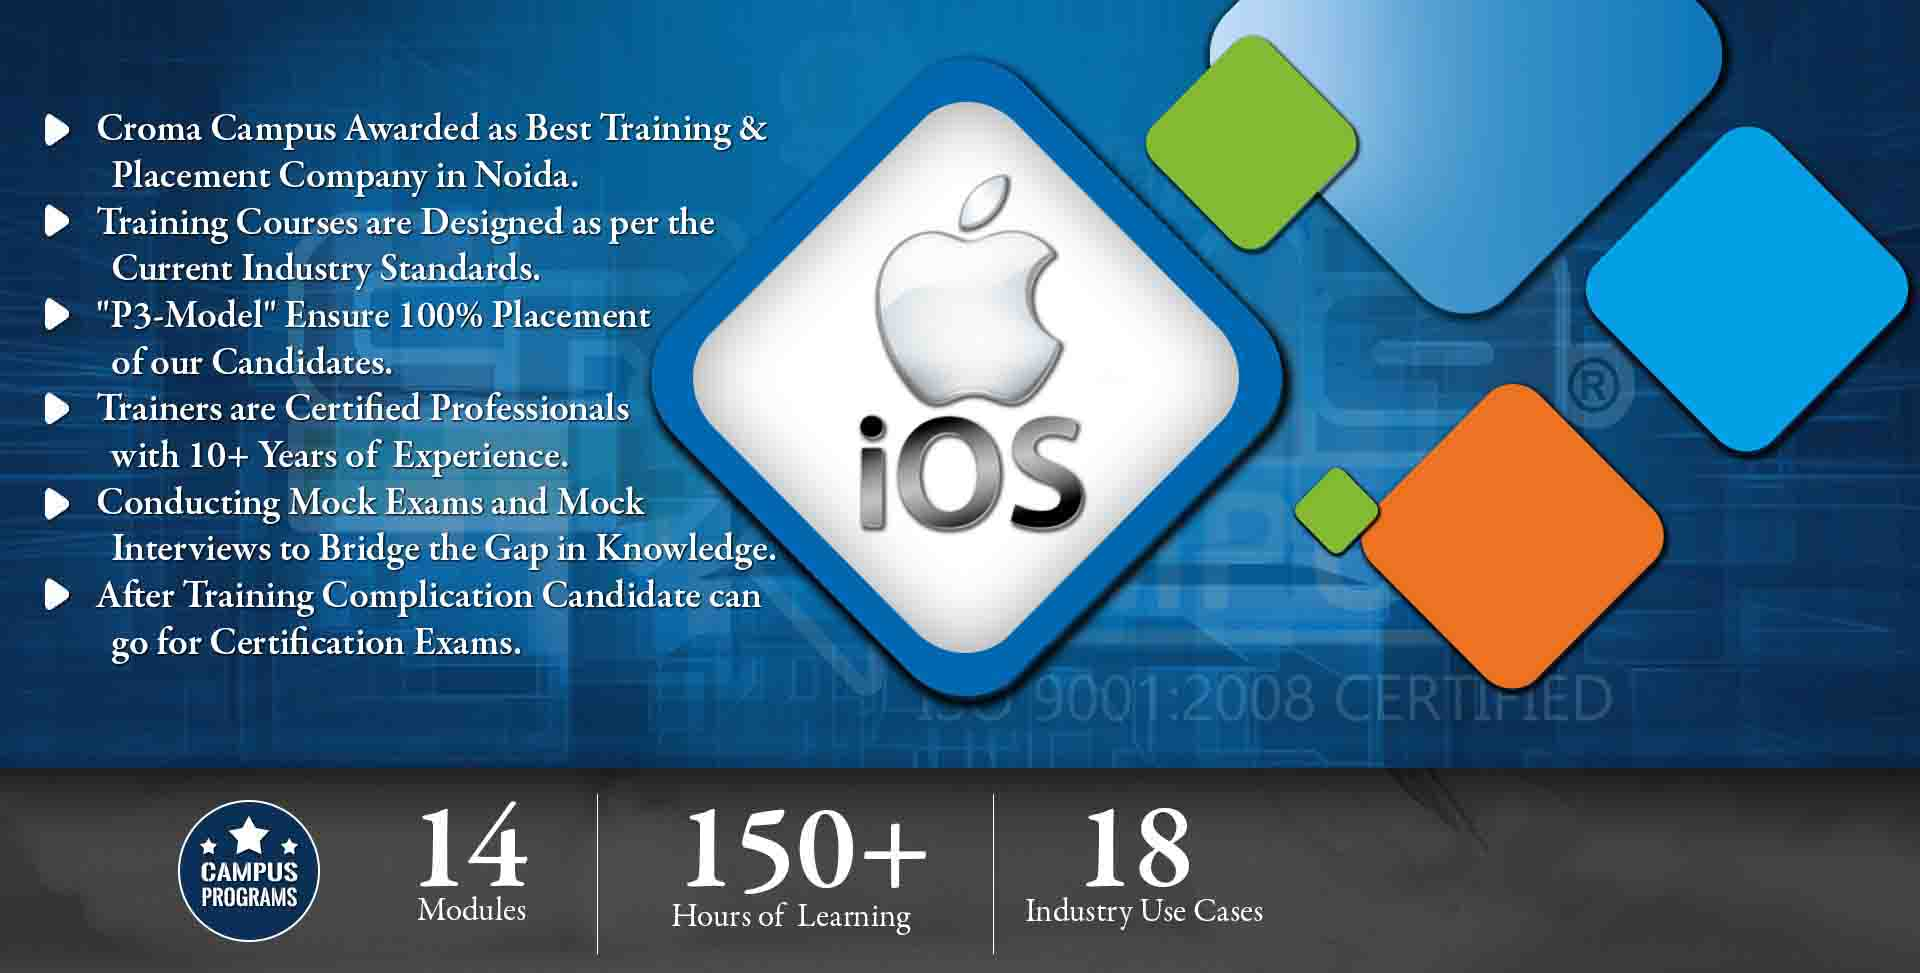 iOS/iPhone Training in Noida- Croma Campus